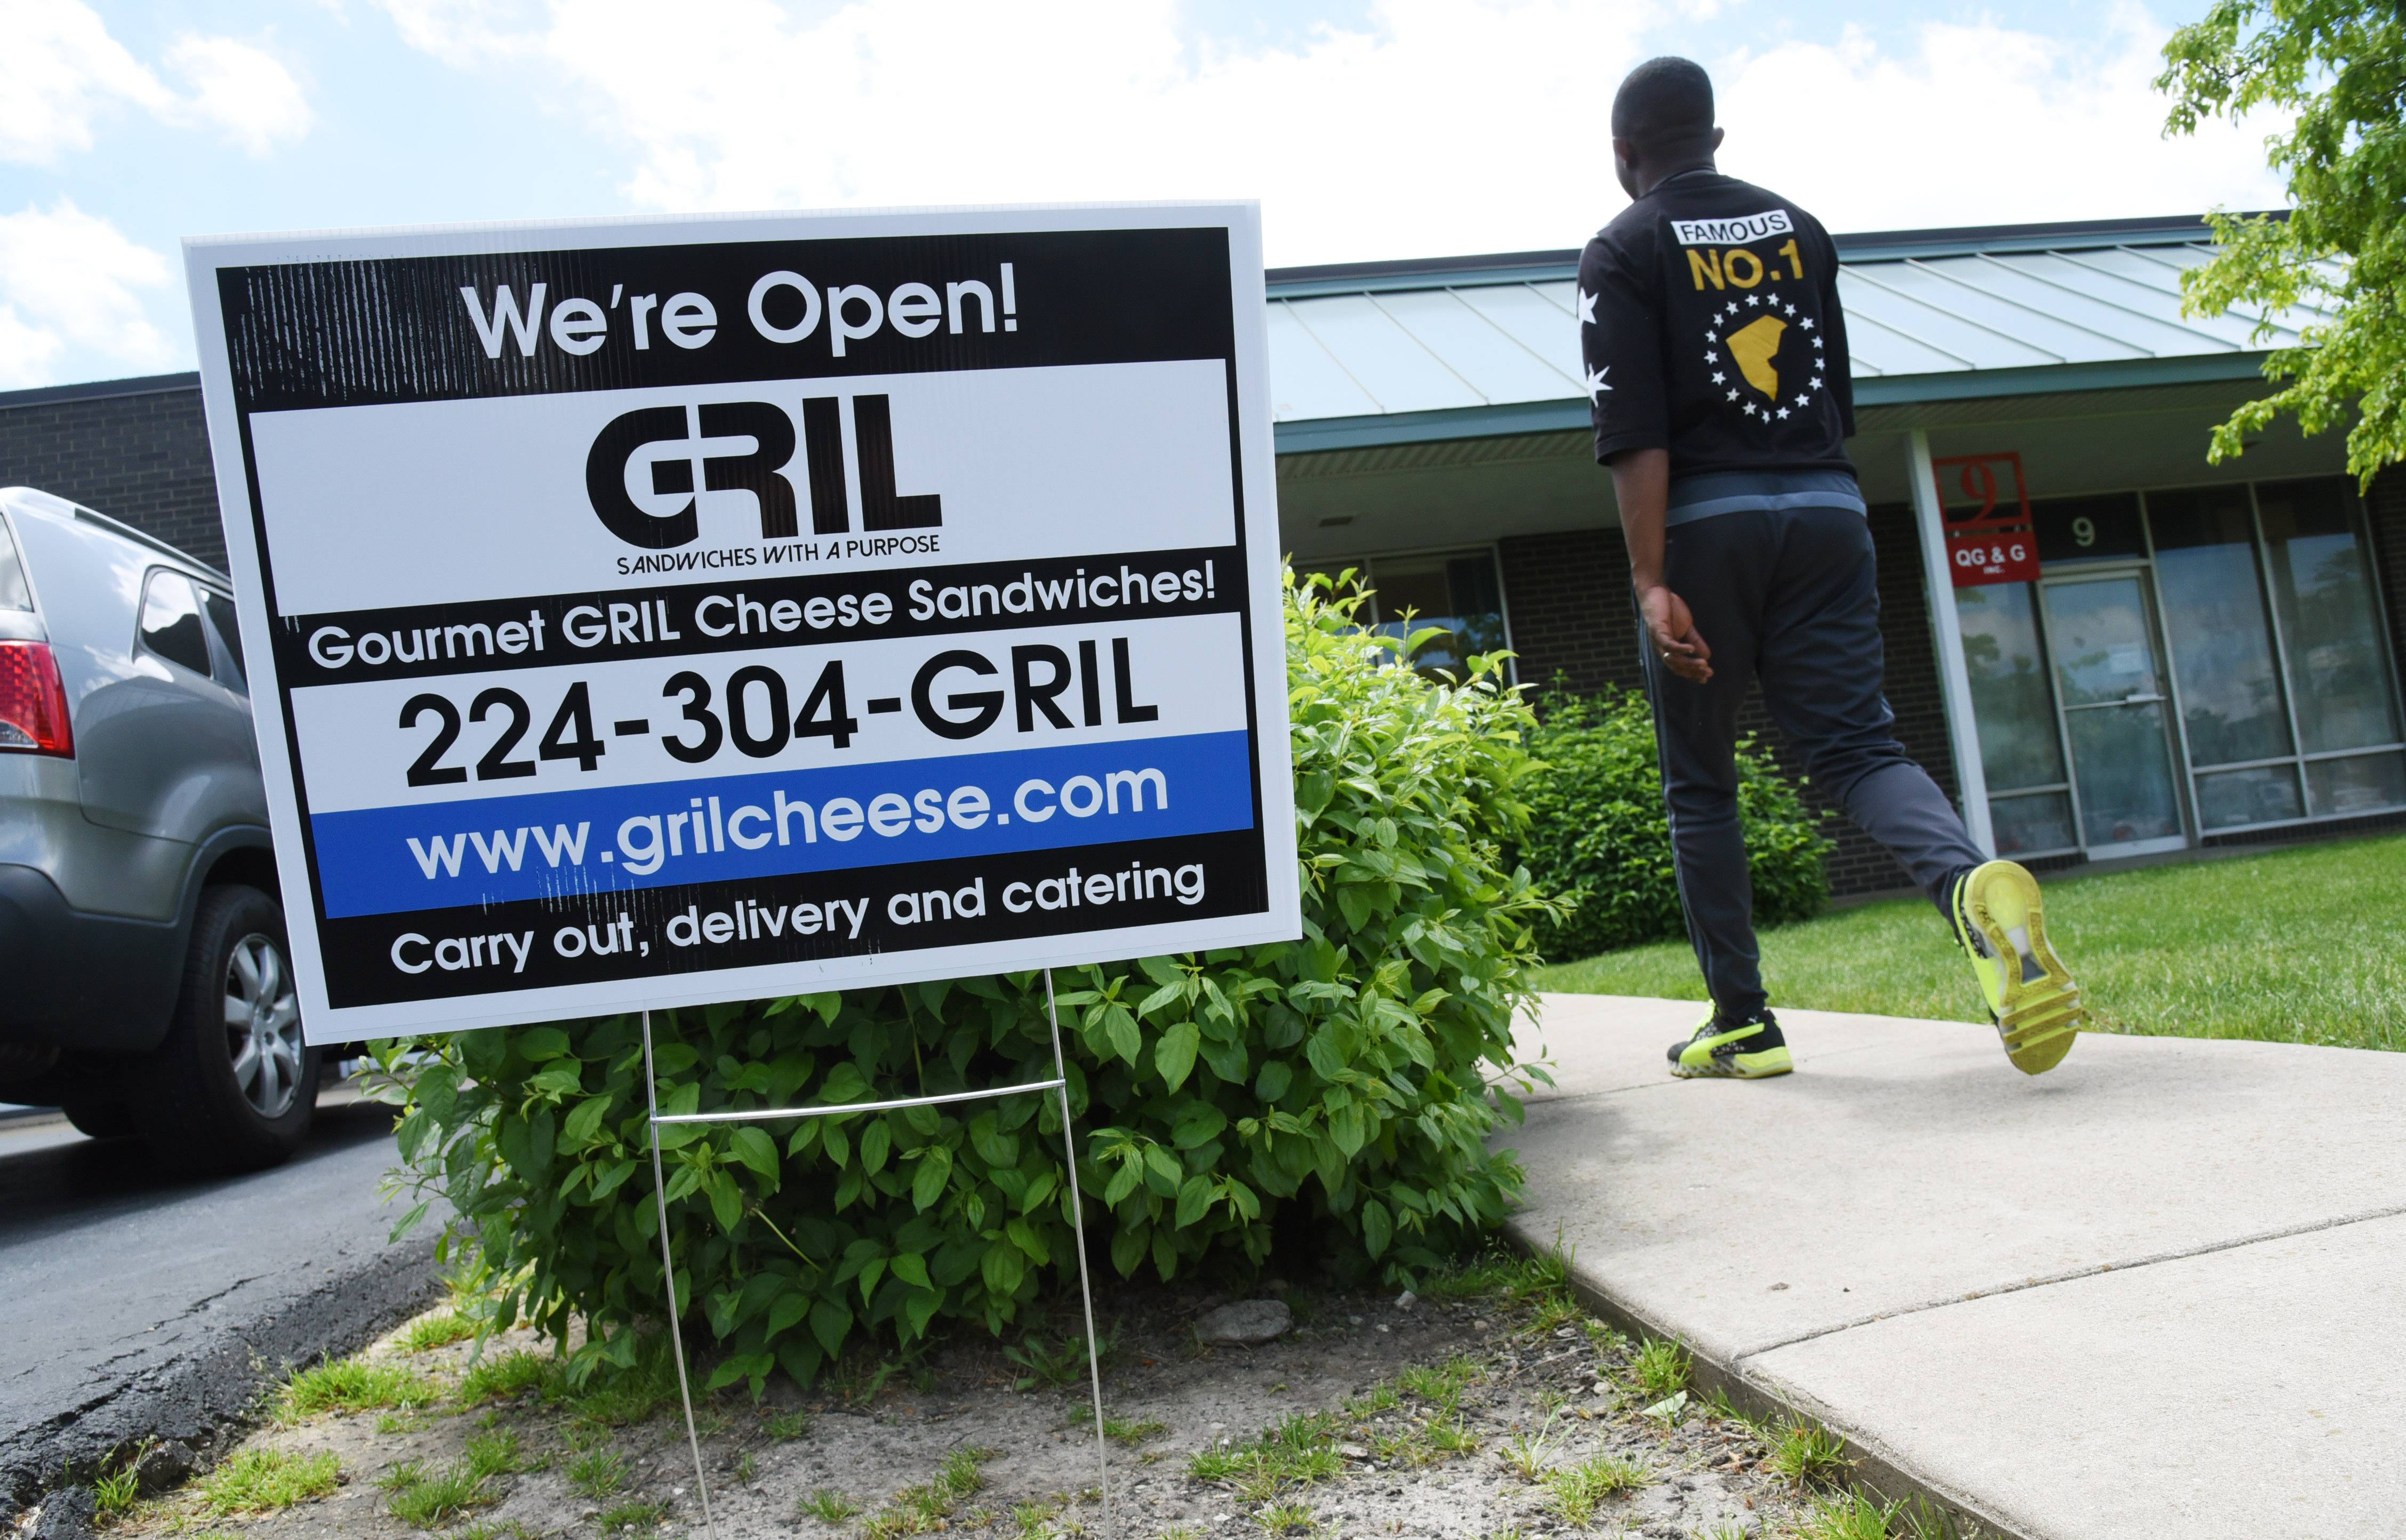 A new gourmet carryout grilled cheese sandwich restaurant called GRIL has opened in an industrial area on Washington Street in Mundelein.